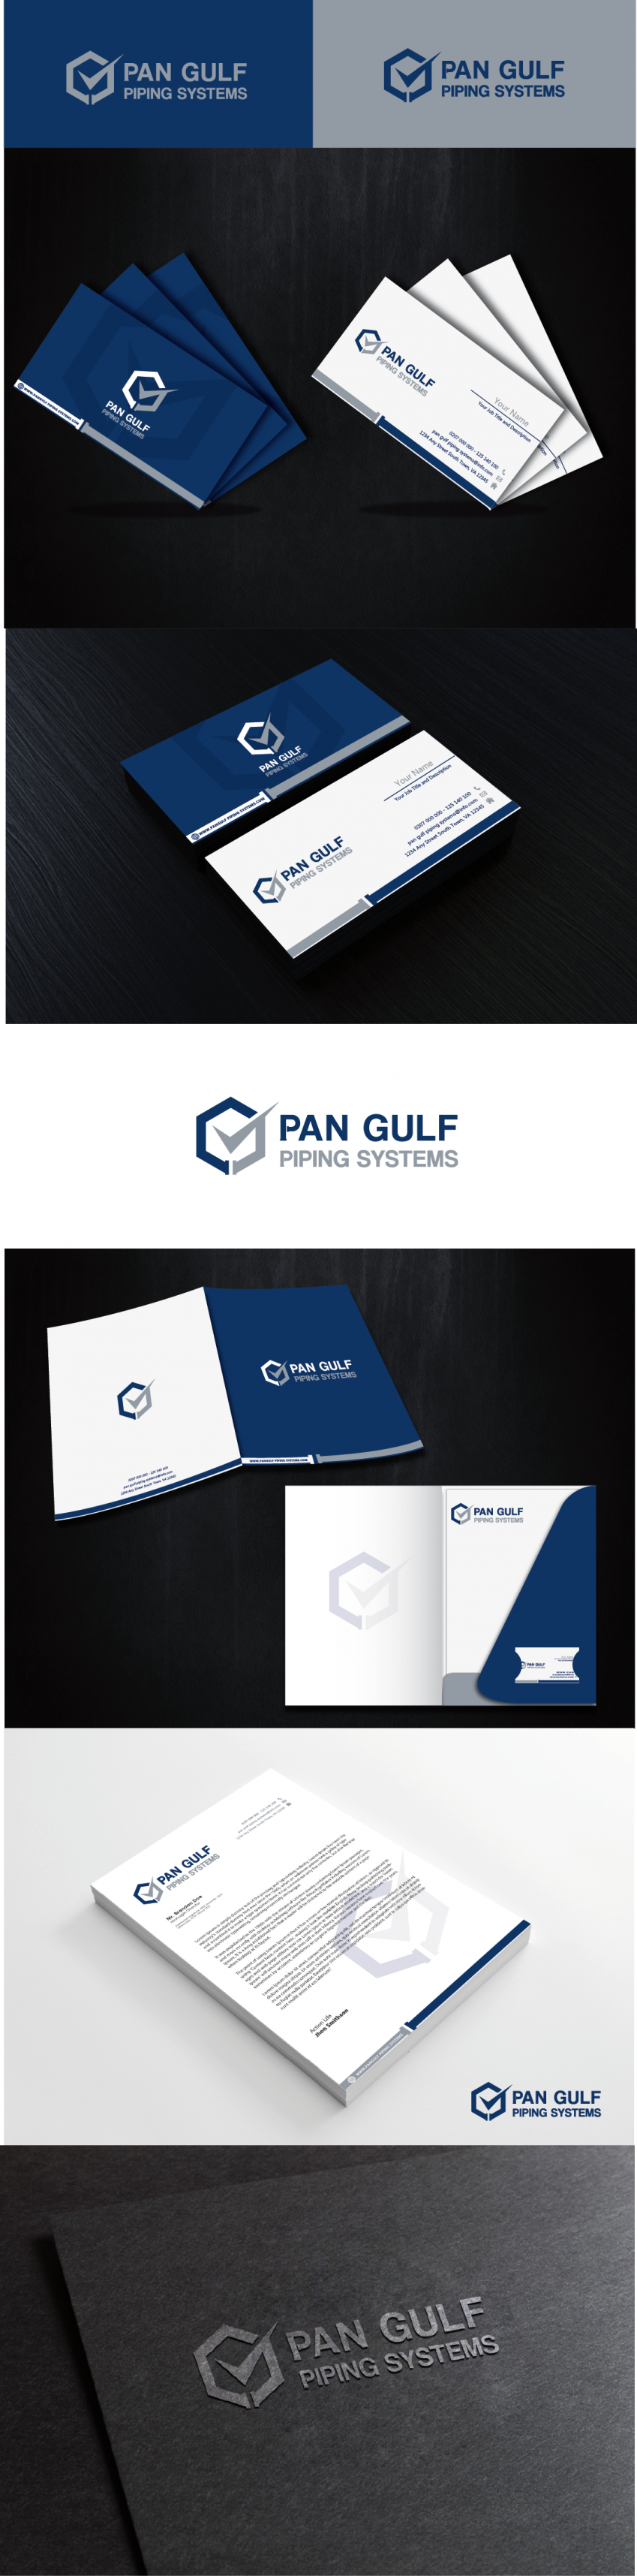 PAN GULF PIPING SYSTEMS papeleria2